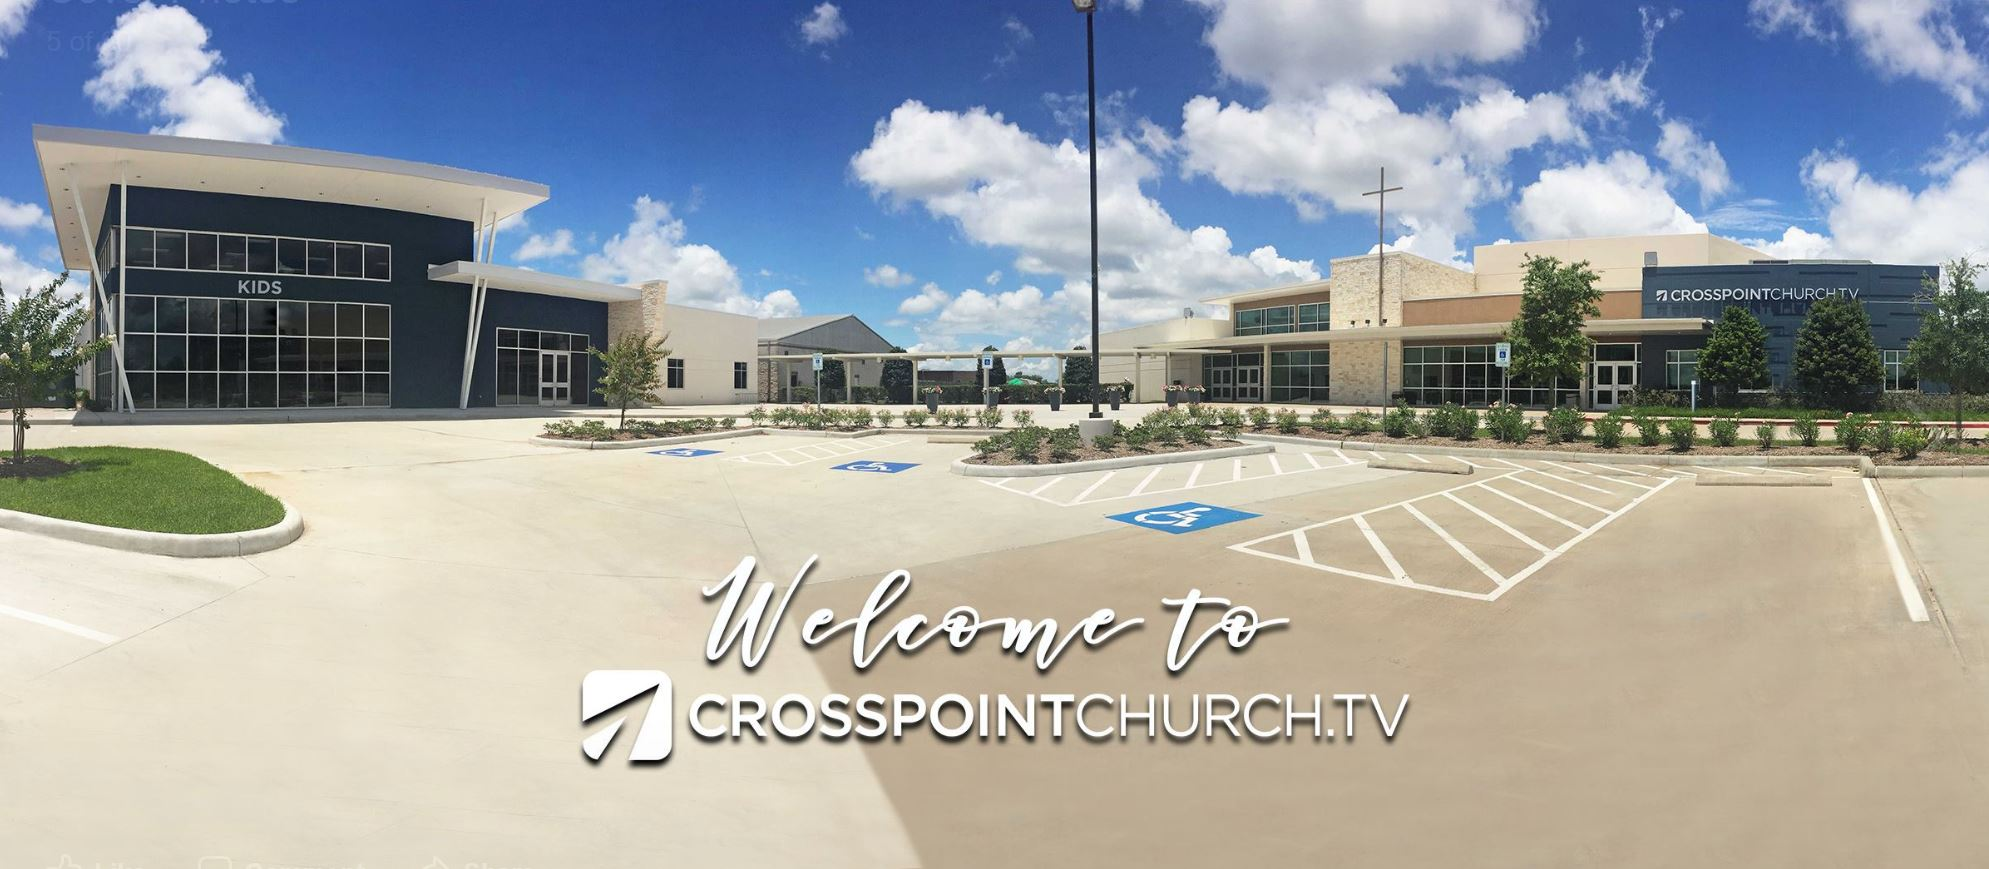 Crosspoint Church Campus in Pearland, Texas